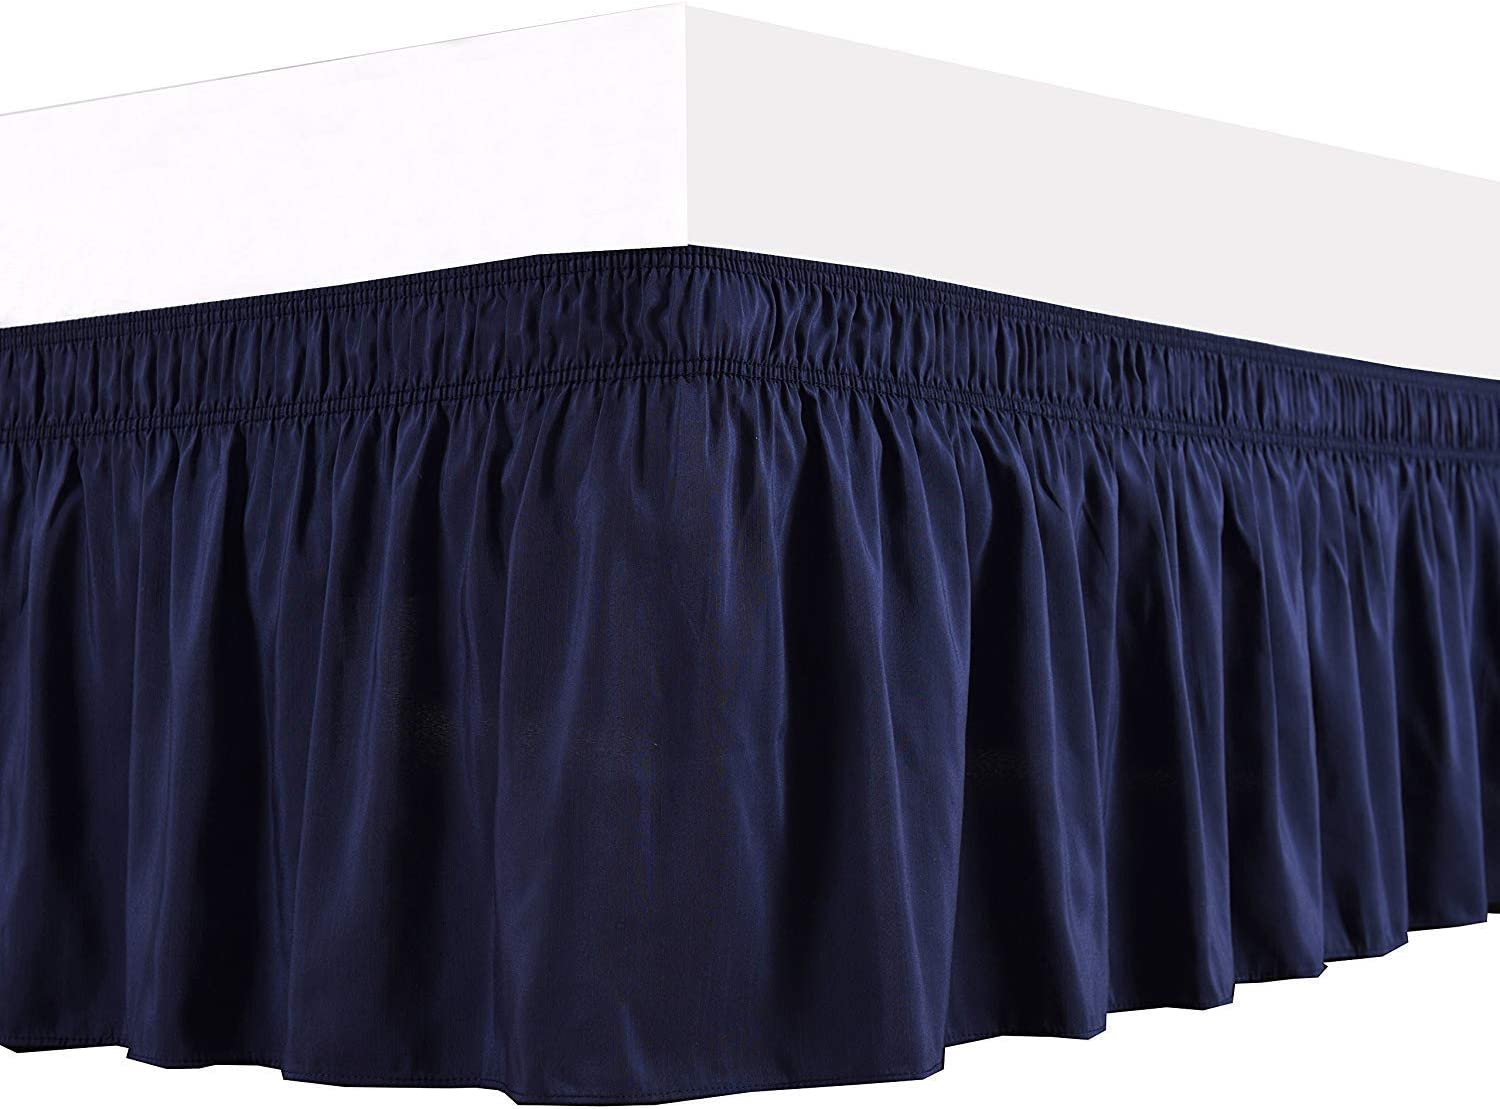 1 Wrap Around Bed Skirt Elastic Ruffles Wrinkle an Safety and trust Max 40% OFF Dust Fit Easy